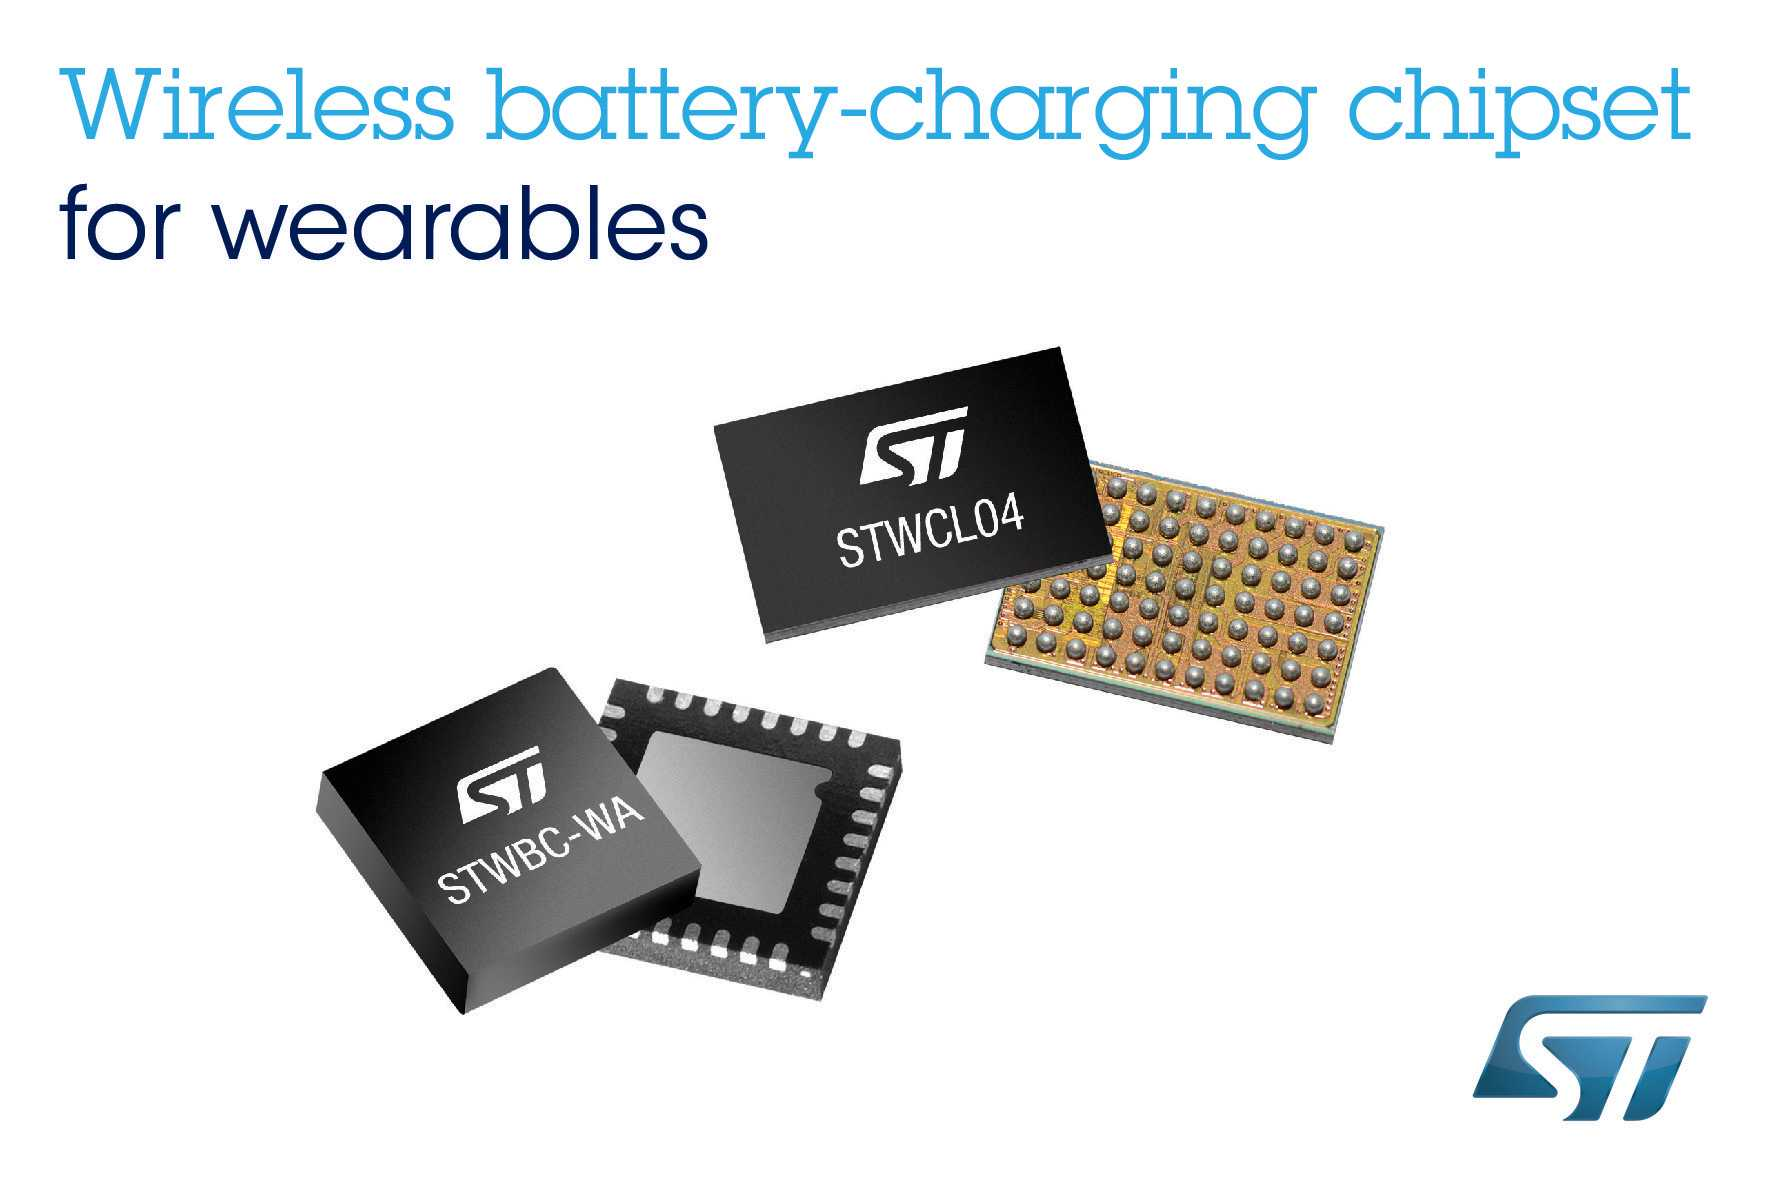 STMicroelectronics wireless battery-charging chipset for wearables